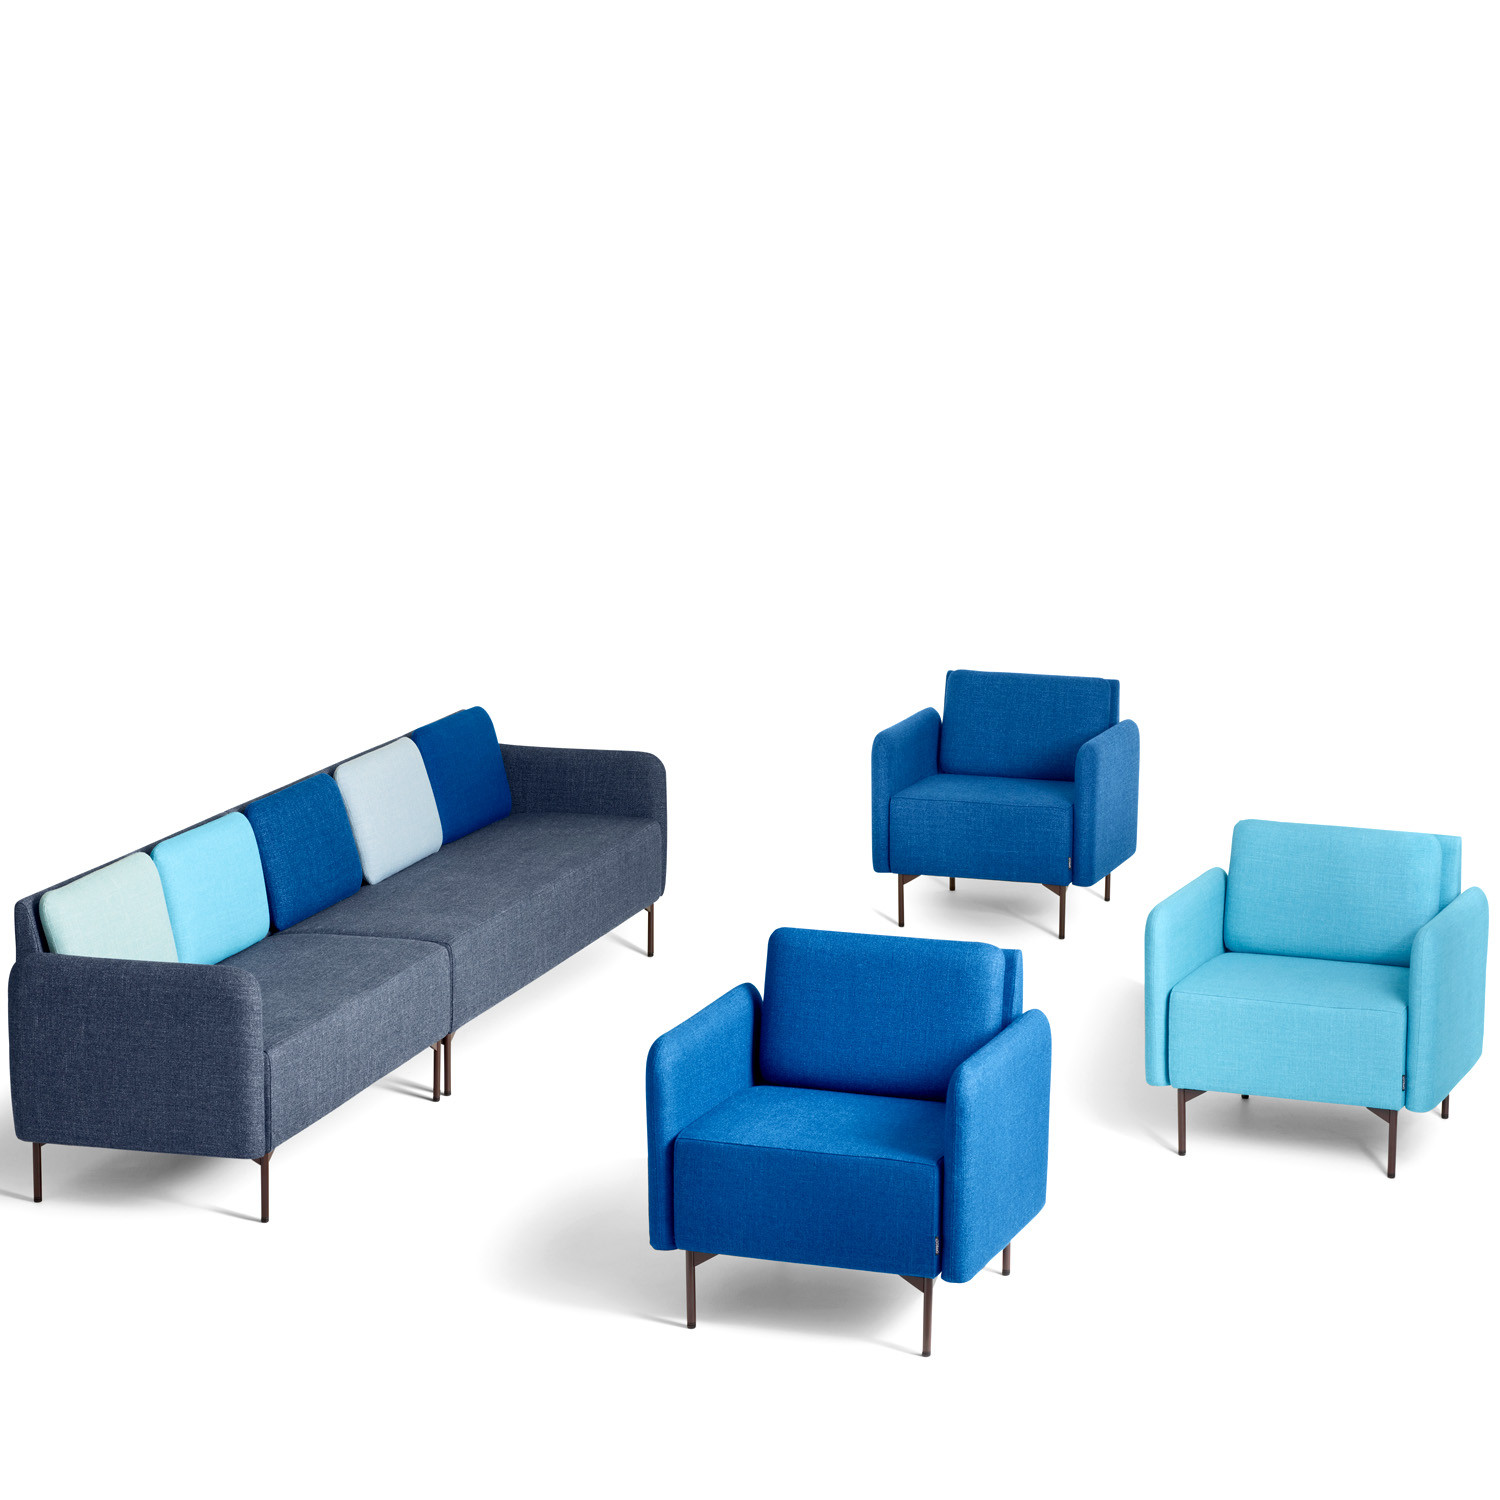 Playback Modular Sofa Range